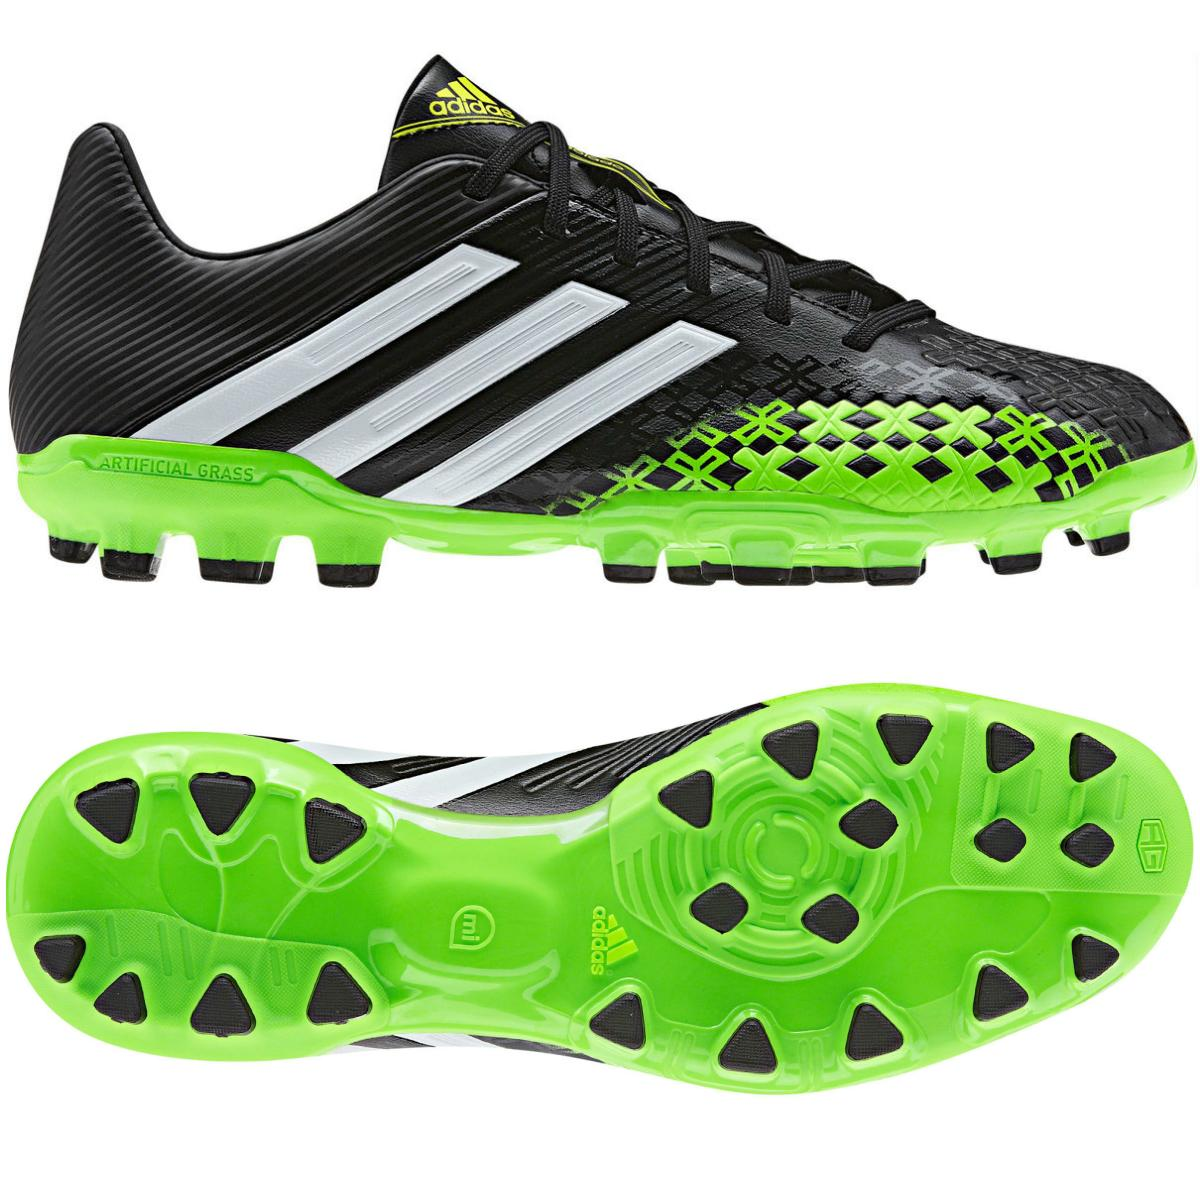 adidas predator absolado lz trx ag schuhe fu ballschuhe. Black Bedroom Furniture Sets. Home Design Ideas